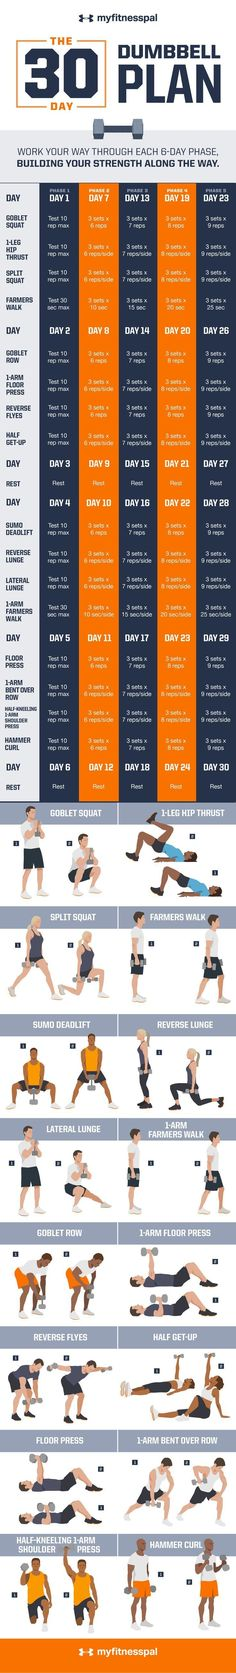 30 Day Dumbbell Plan workout | Posted By: NewHowToLoseBellyFat.com